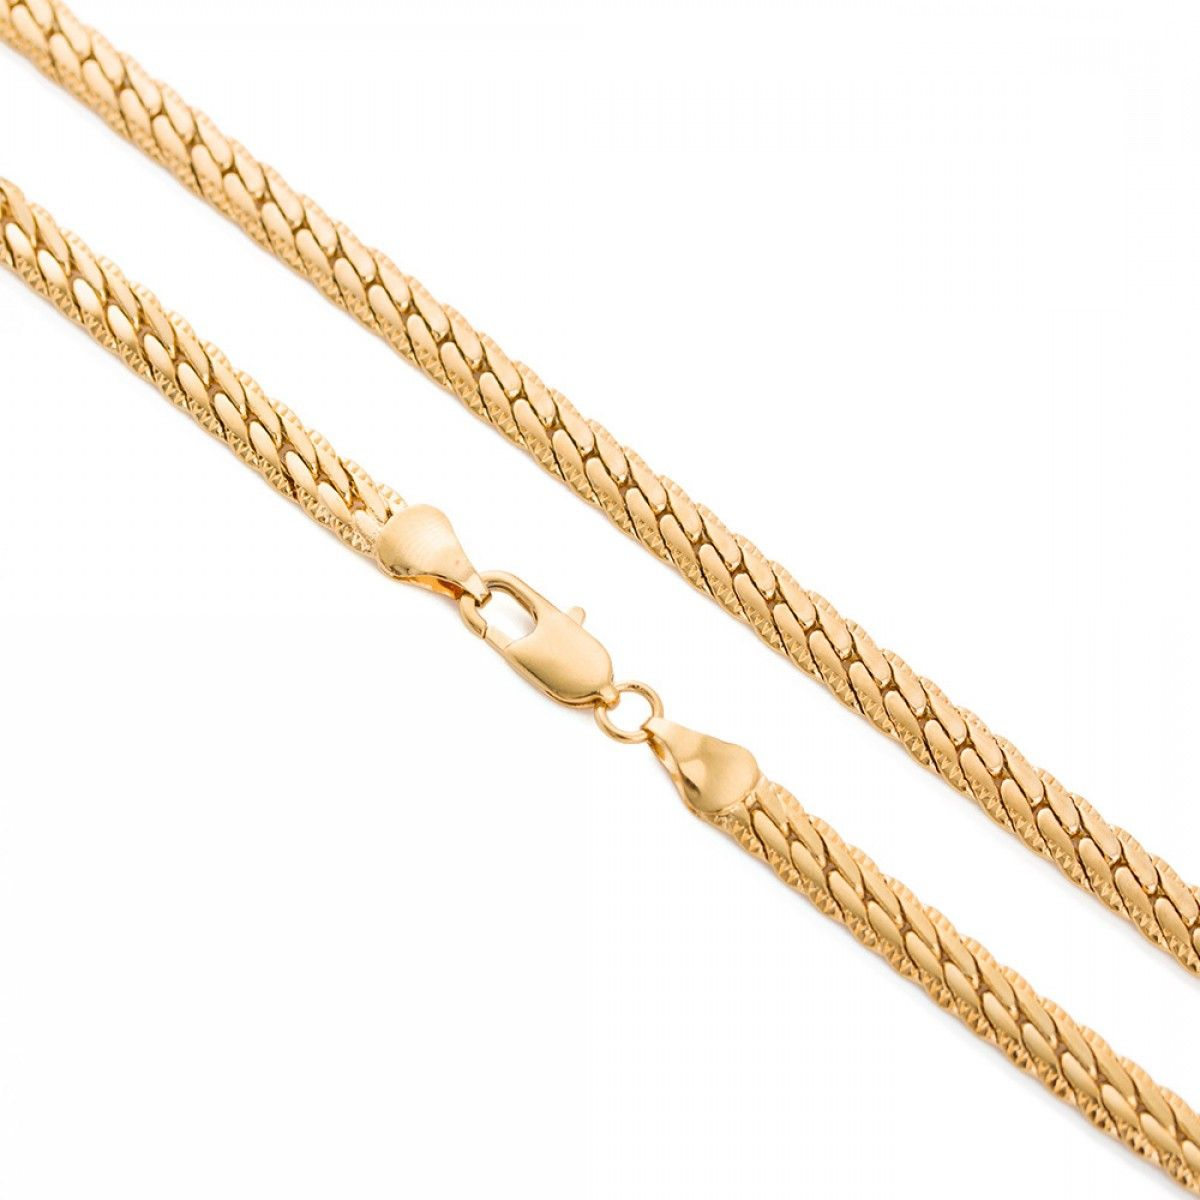 Styles of gold chainsneck chain typesgold chain design namesmens chainsbuy designer men chains online at discounted price we have a huge collection of chains for men online aloadofball Images